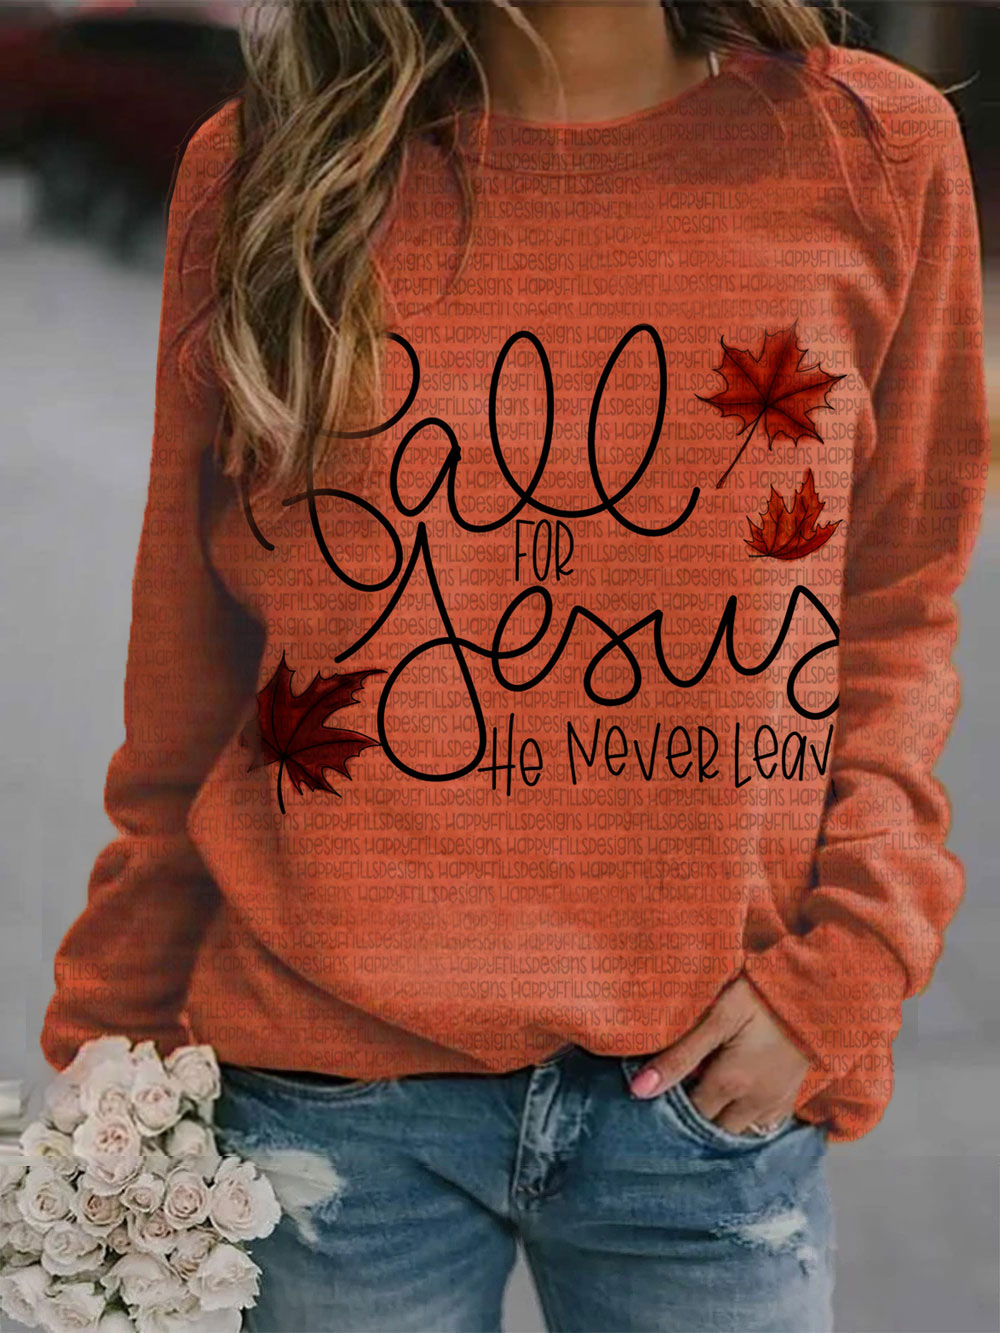 Fall For Jesus He Never Leave Sudadera casual con estampado de hojas de arce